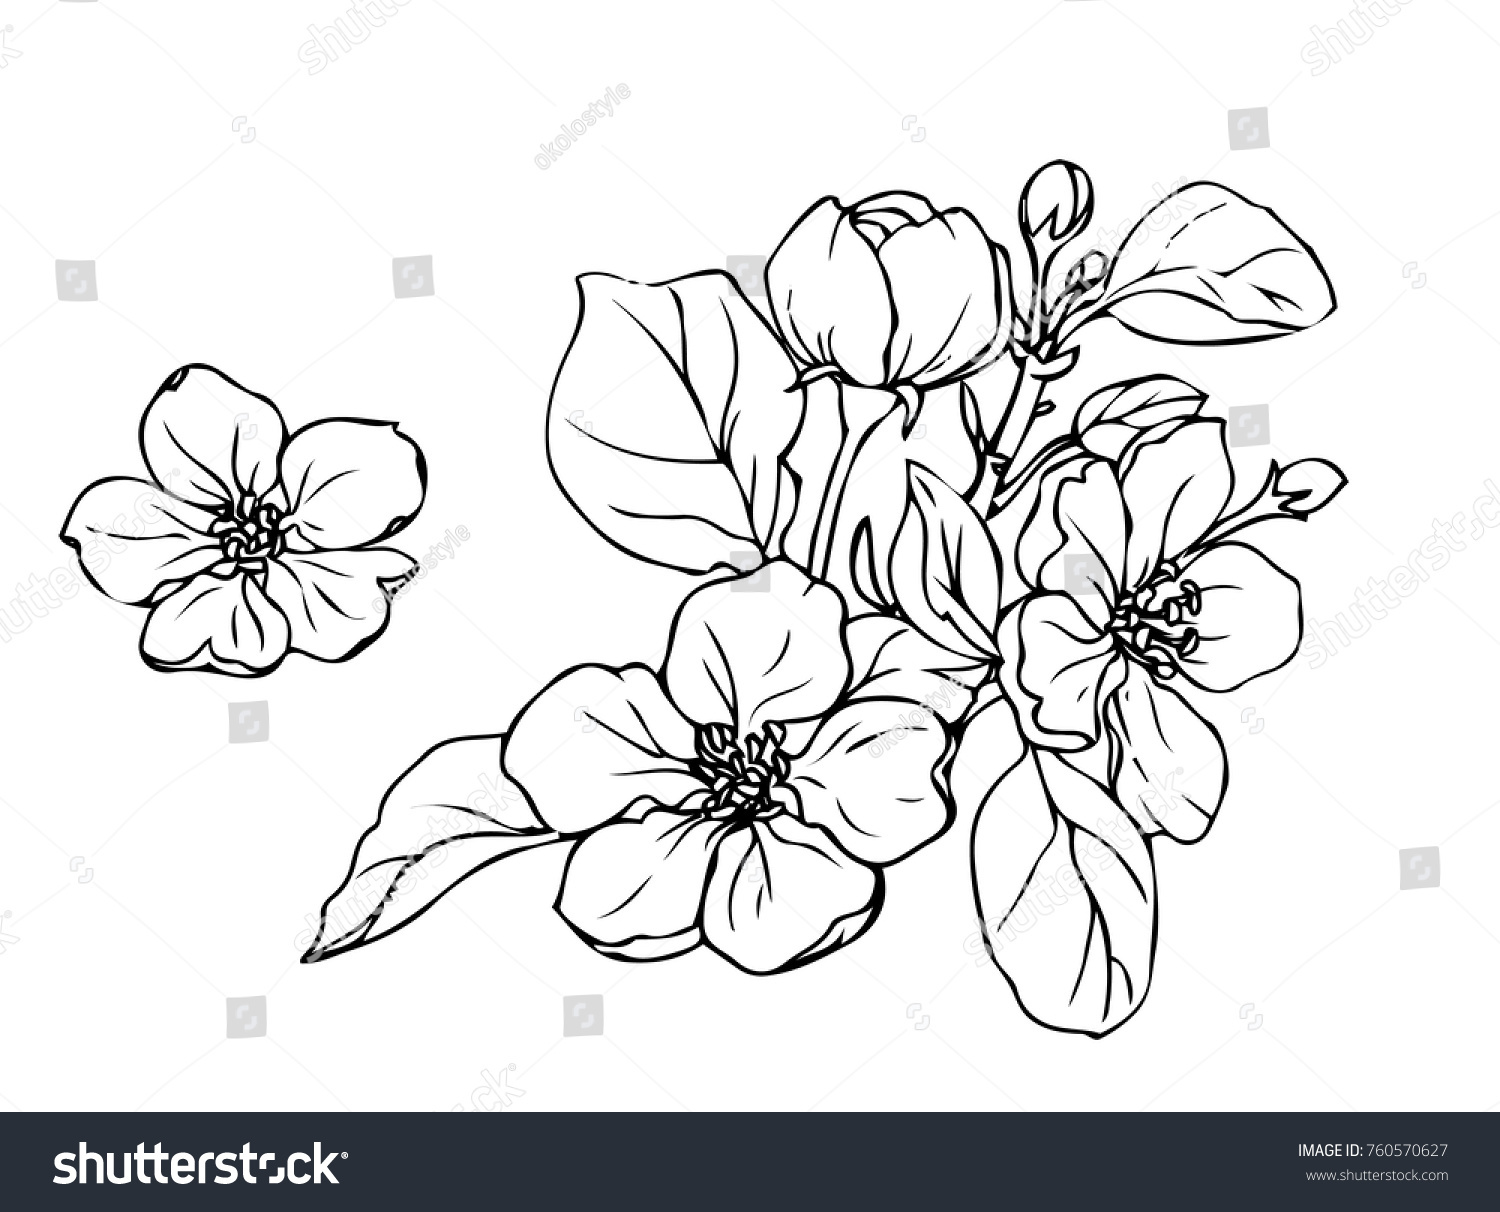 Ink, pencil,  the leaves and flowers of apple isolated. Line art transparent background. Hand drawn nature painting. Freehand sketching illustration.  #760570627